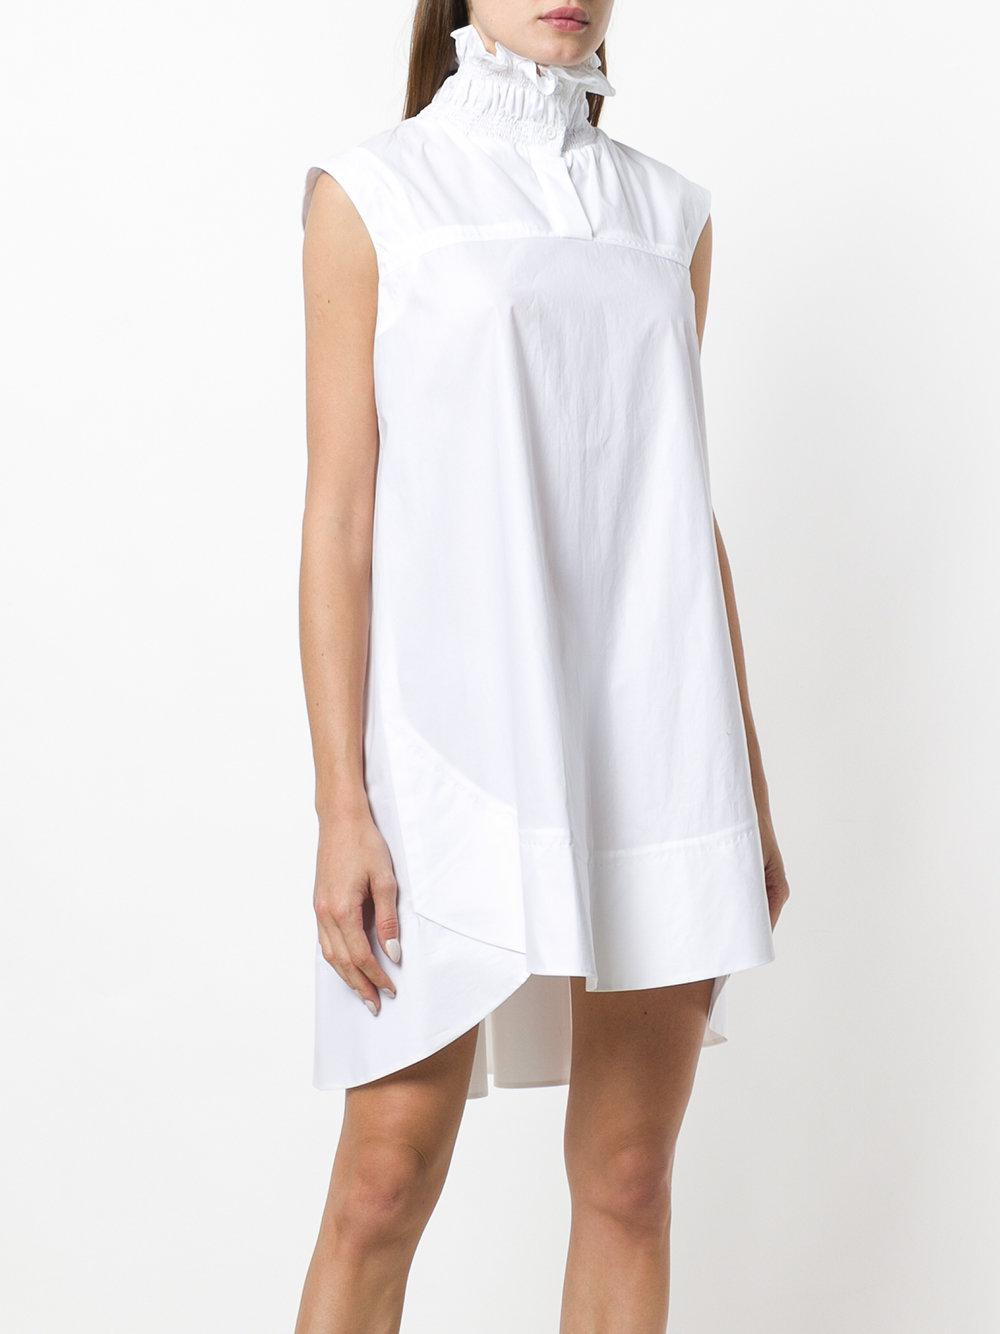 ruffled-collar asymmetri mini dress - White Carven Clearance Get Authentic Good Selling Exclusive Cheap Online Quality Original Buy Cheap Pay With Paypal jR0bndQ